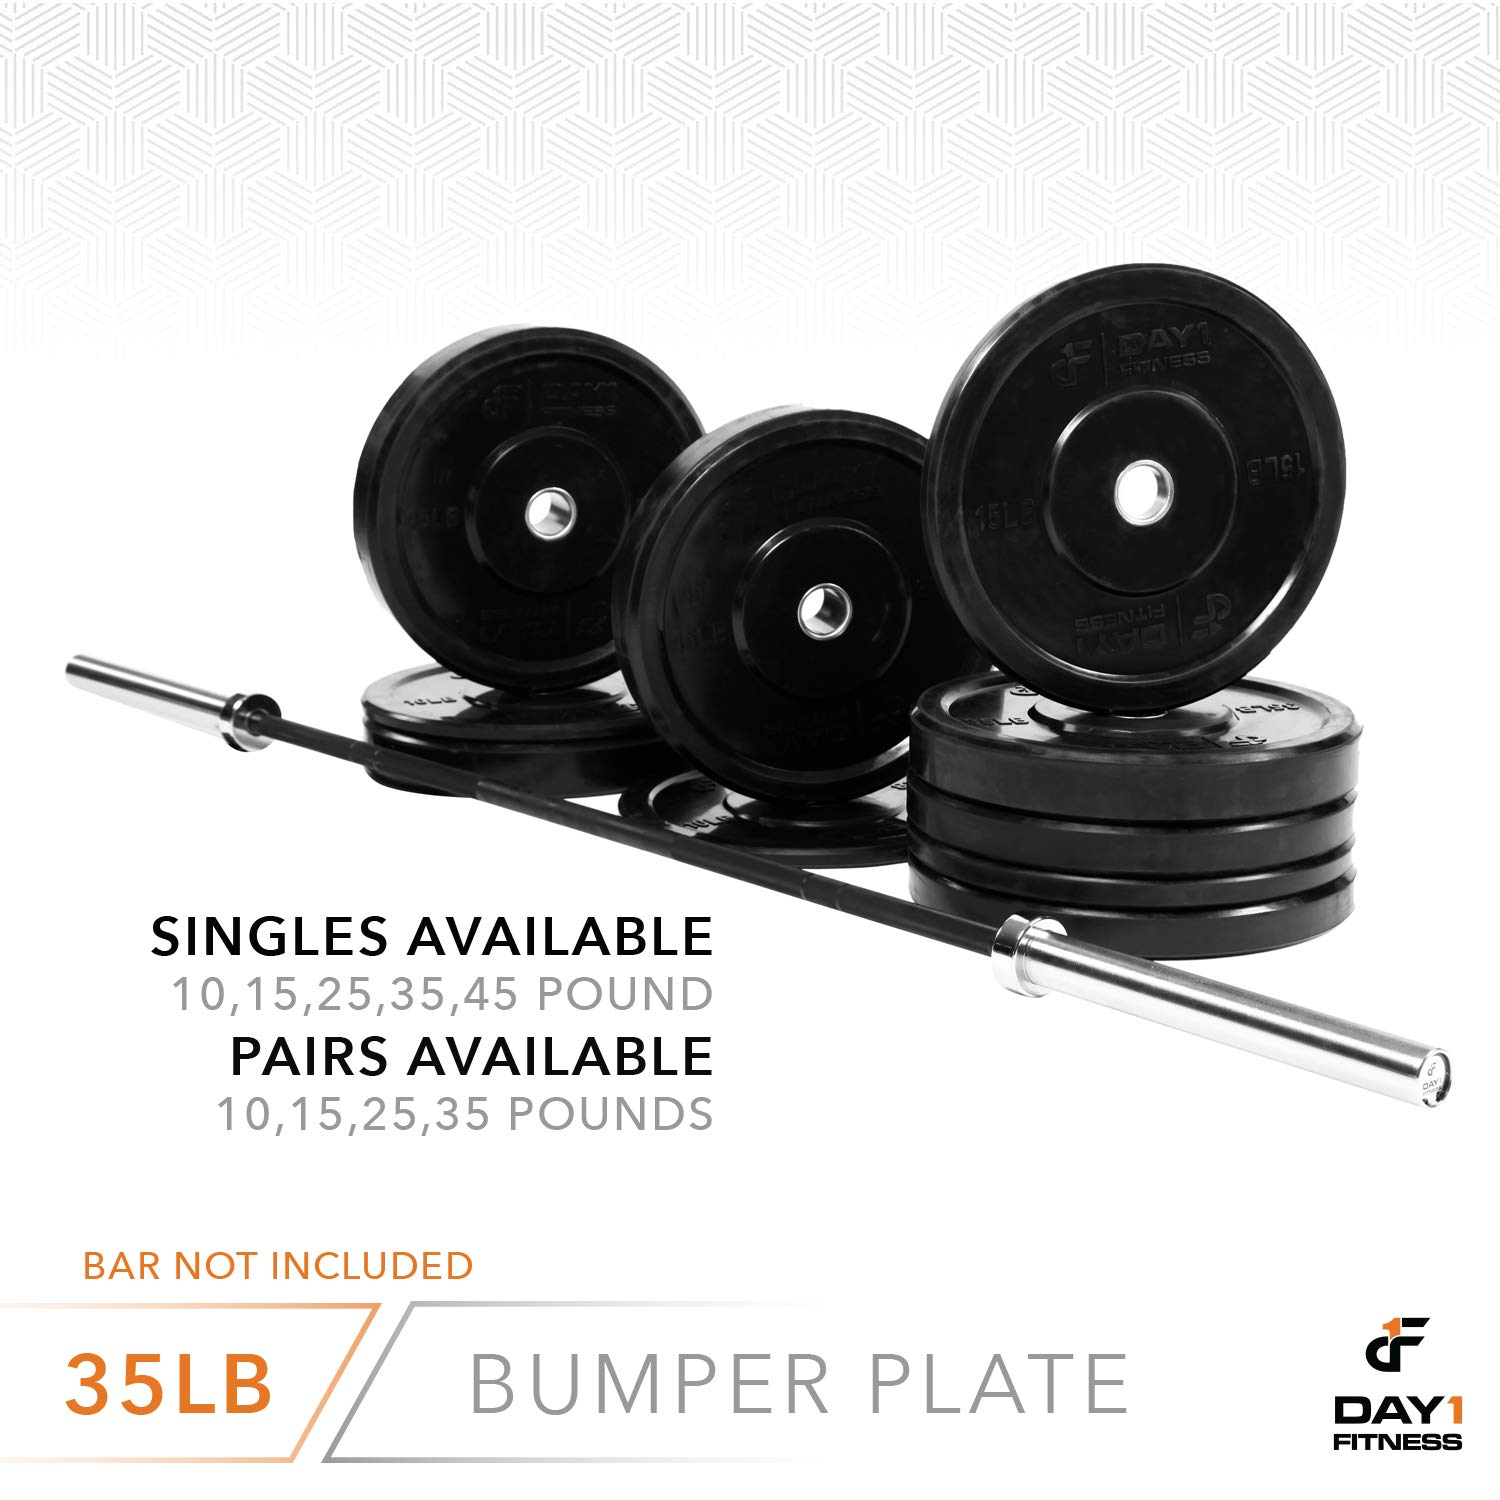 """Day 1 Fitness Olympic Bumper Weighted Plate 2"""" for Barbells, Bars – 35 lb Single Plate - Shock-Absorbing, Minimal Bounce Steel Weights with Bumpers for Lifting, Strength Training, and Working Out by Day 1 Fitness (Image #6)"""